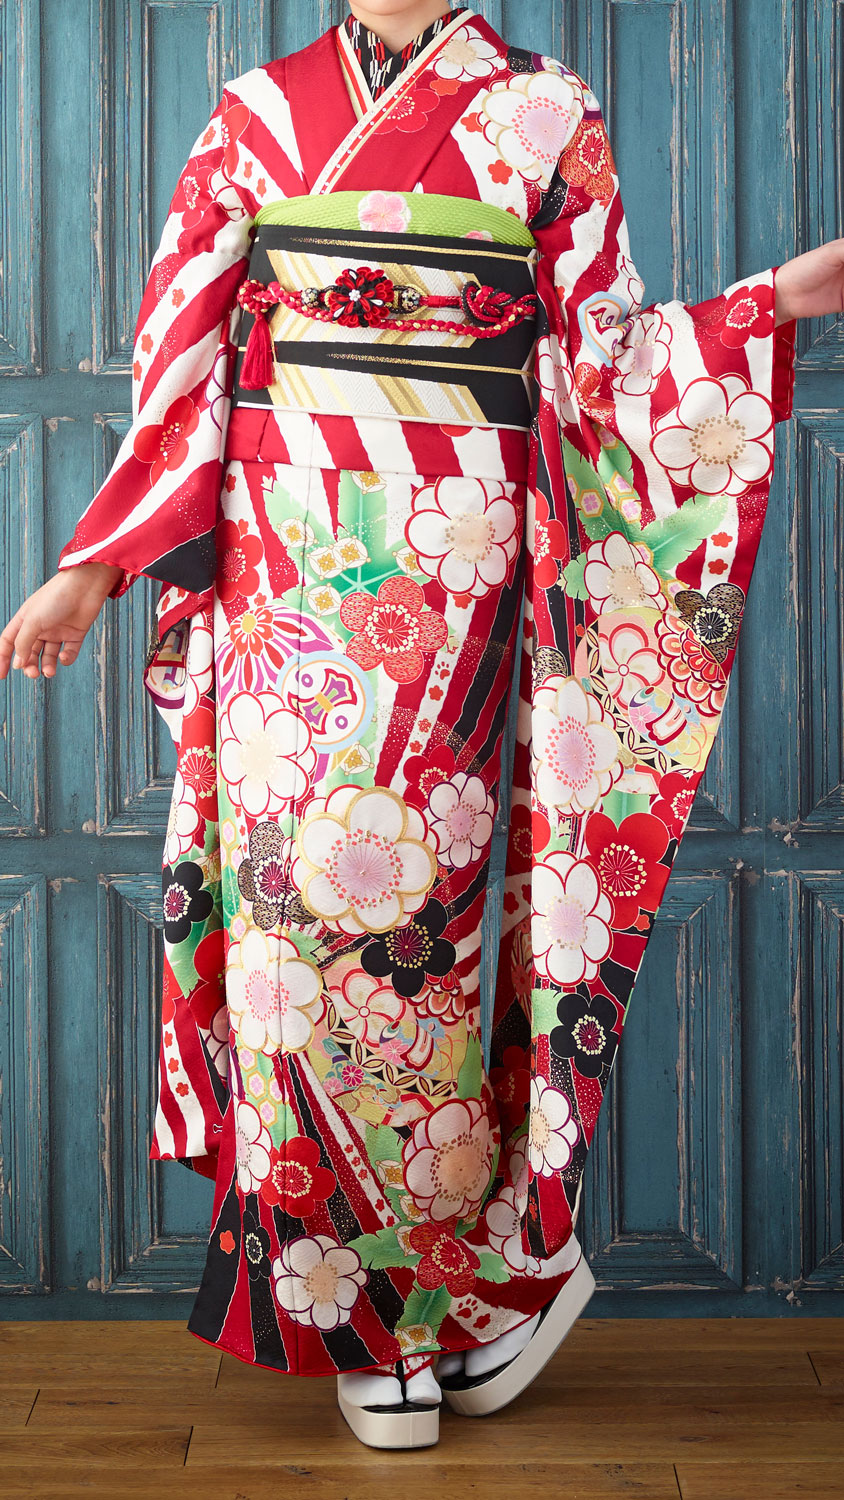 index_furisode_g011.jpg